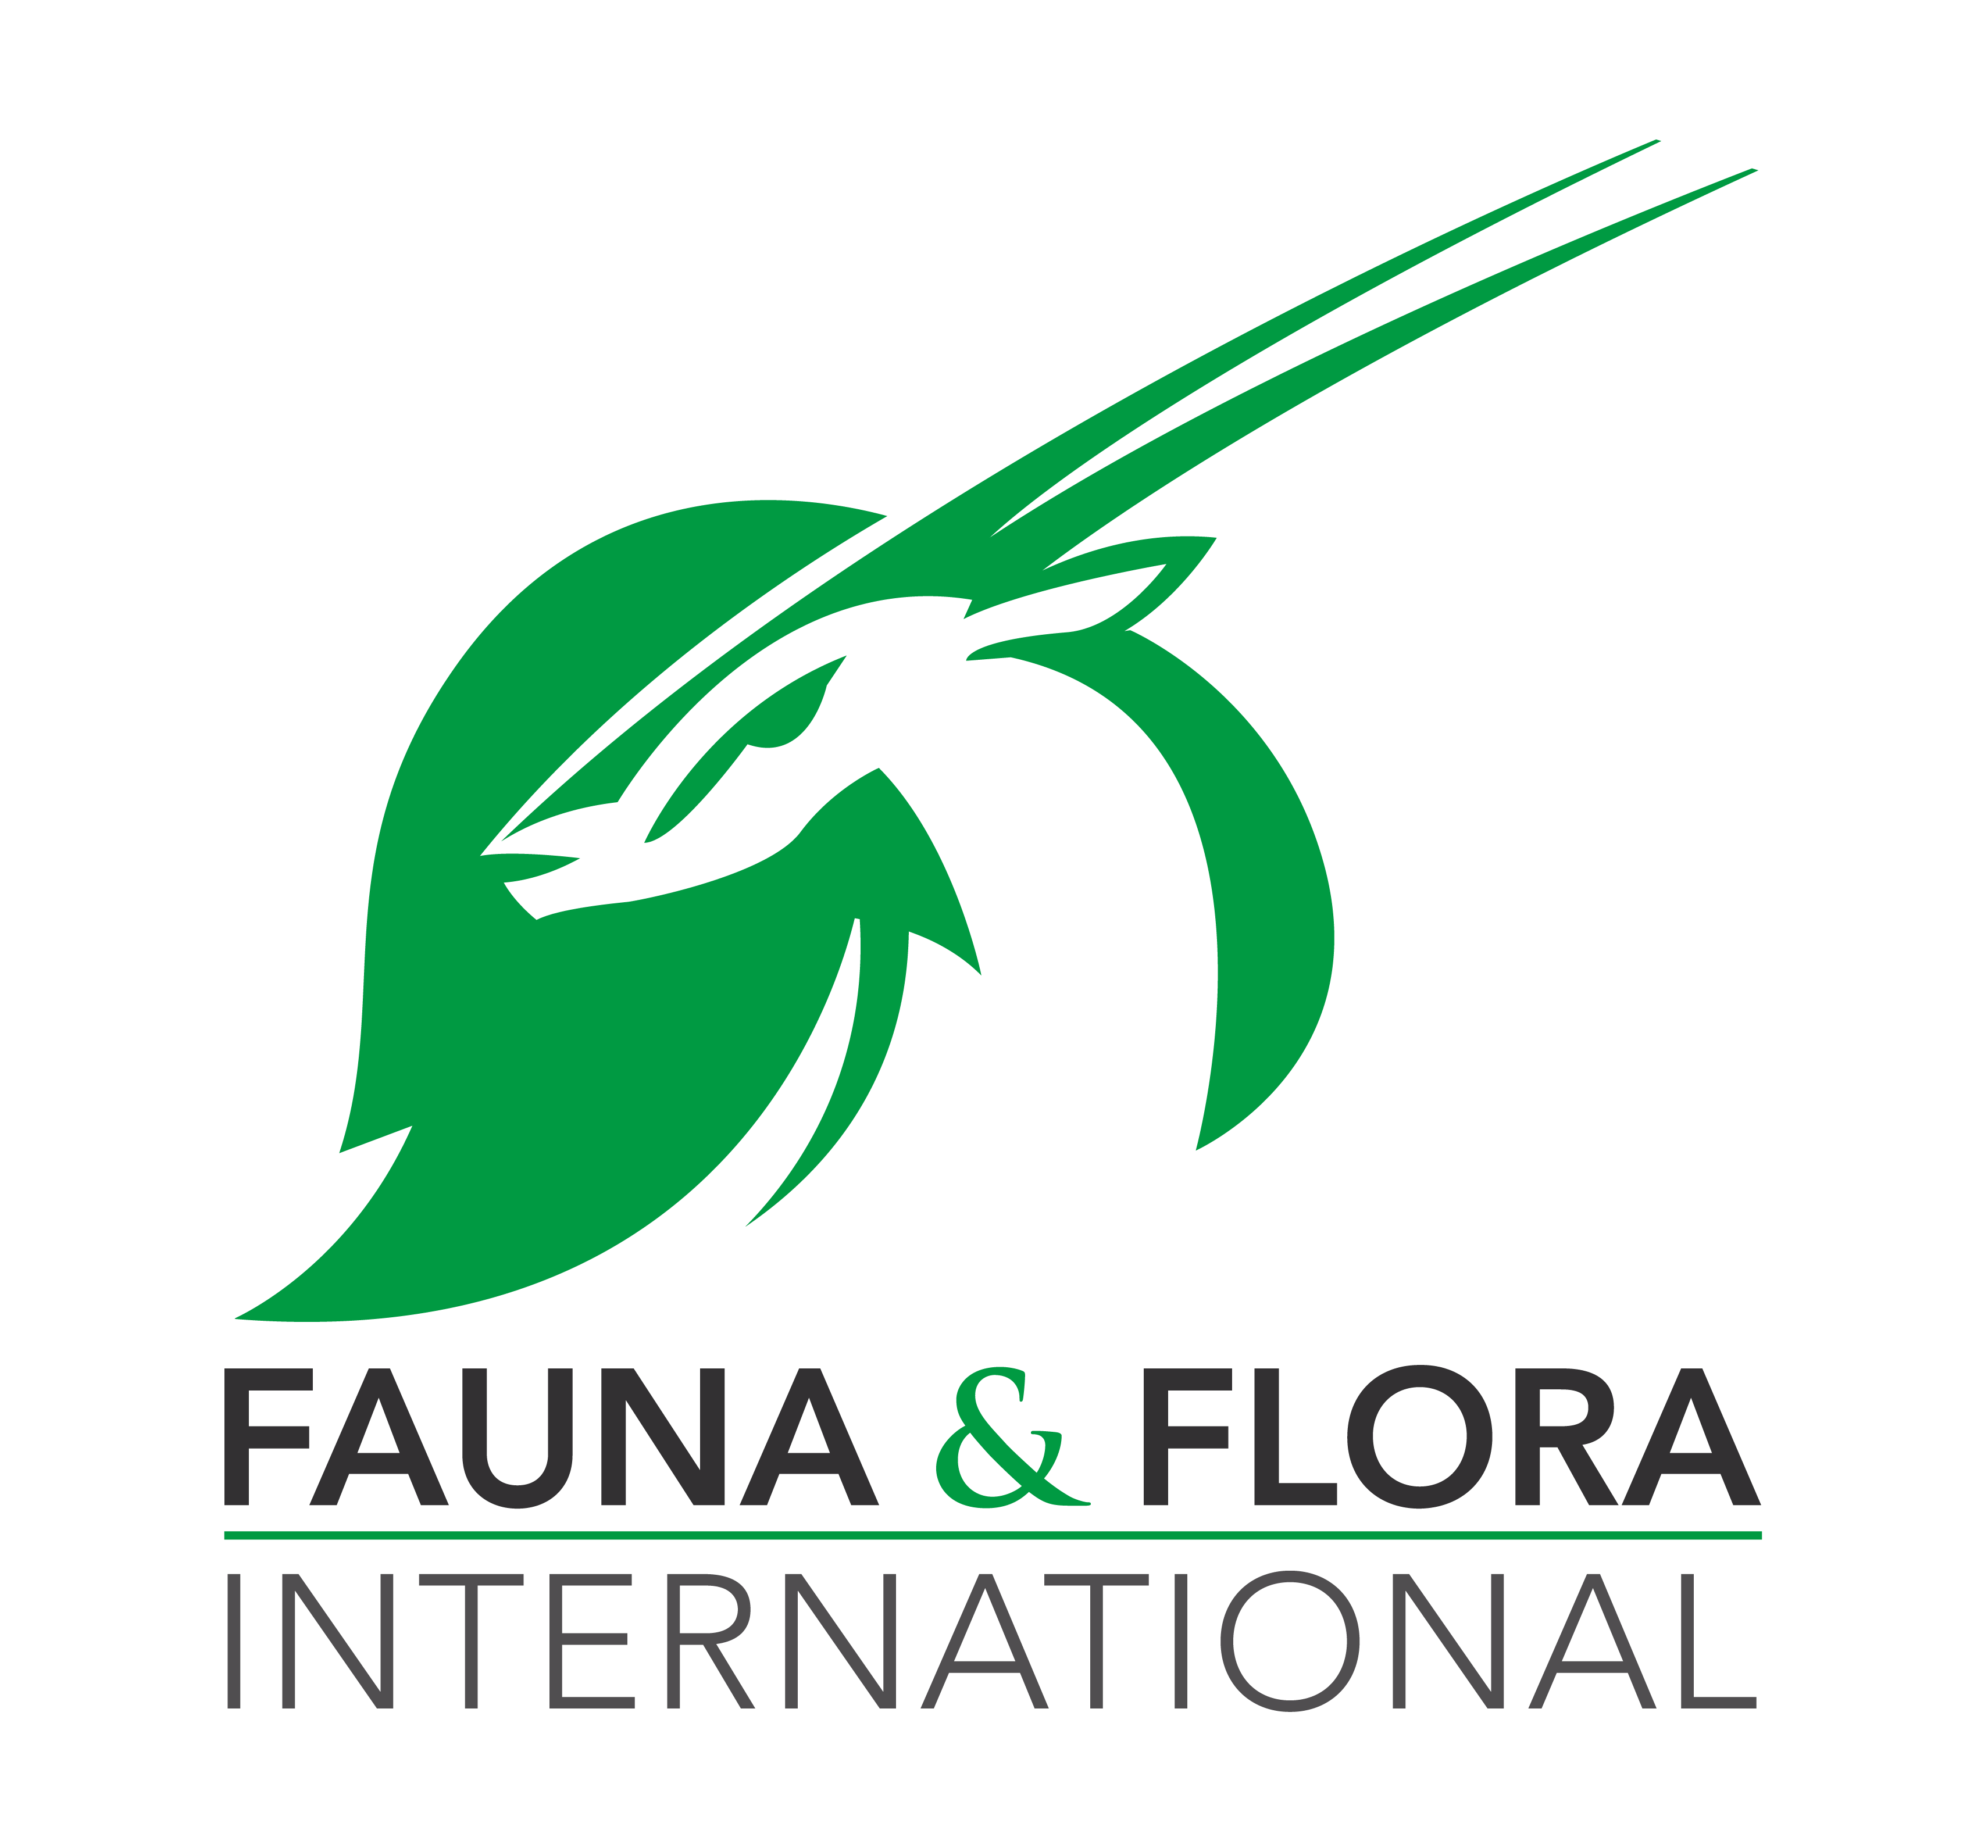 fauna-flora-international